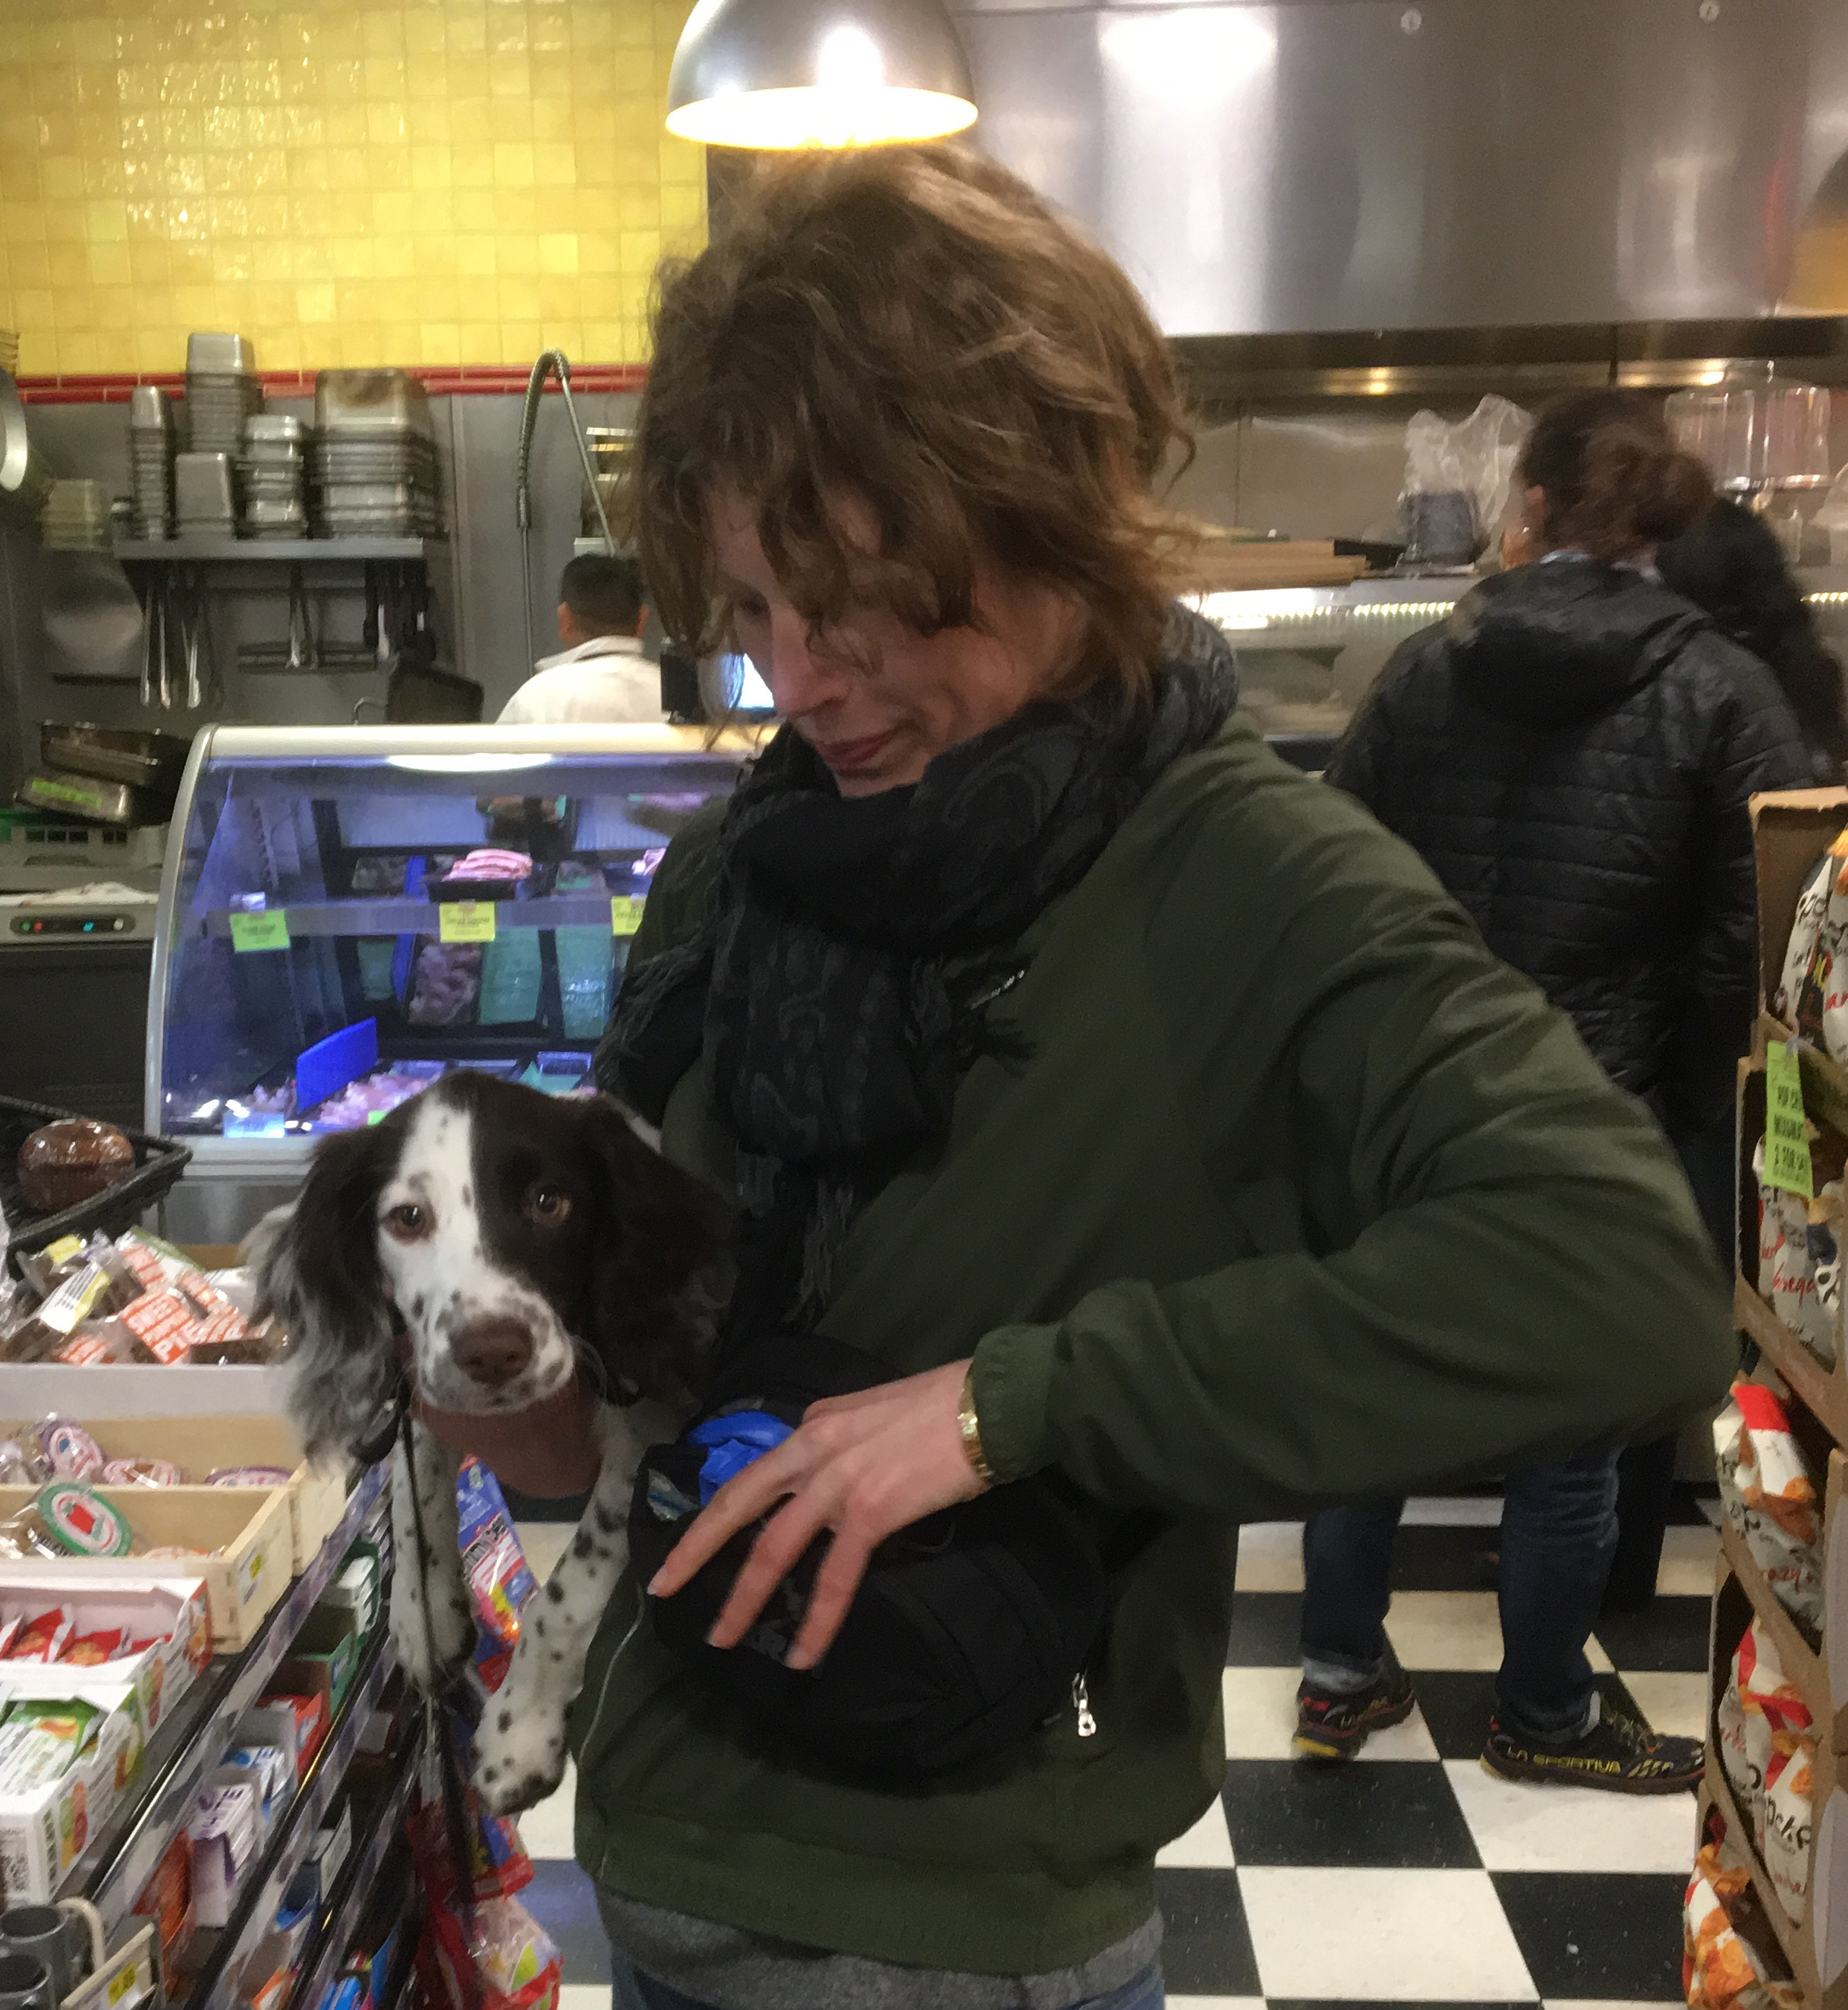 Woman Holding Adorable Little English Springer Spaniel Puppy